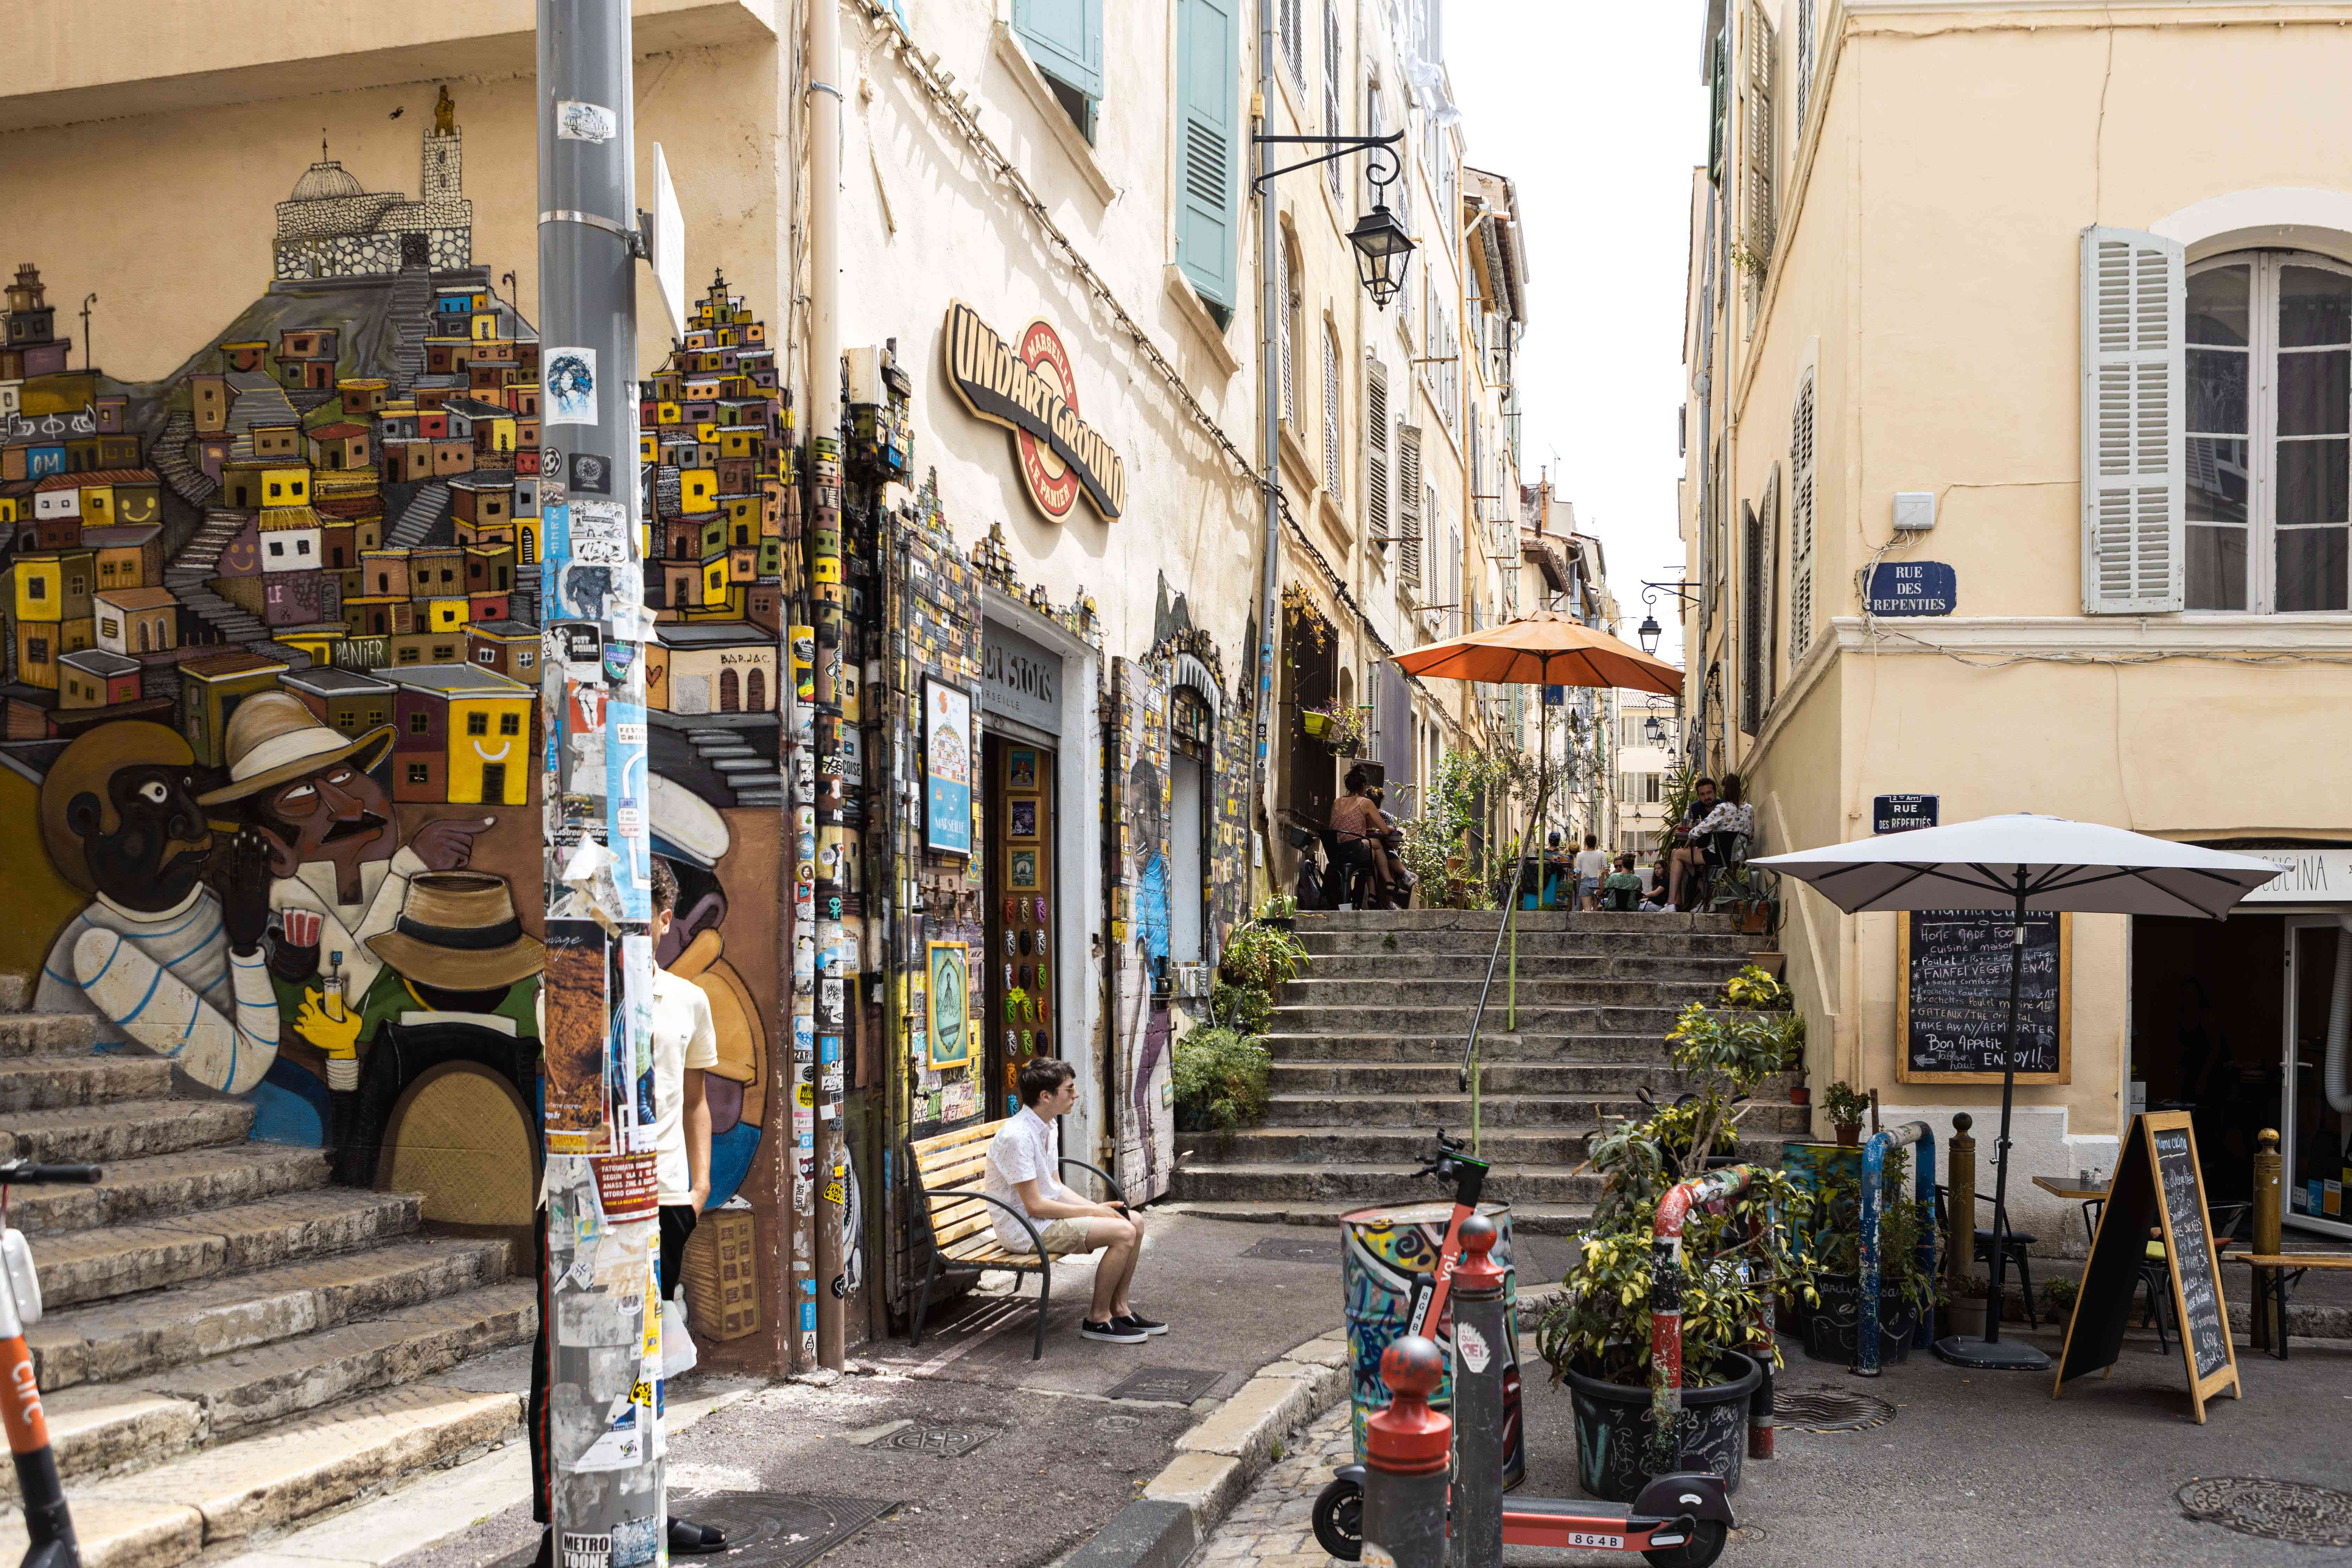 A corner with stairs and street art